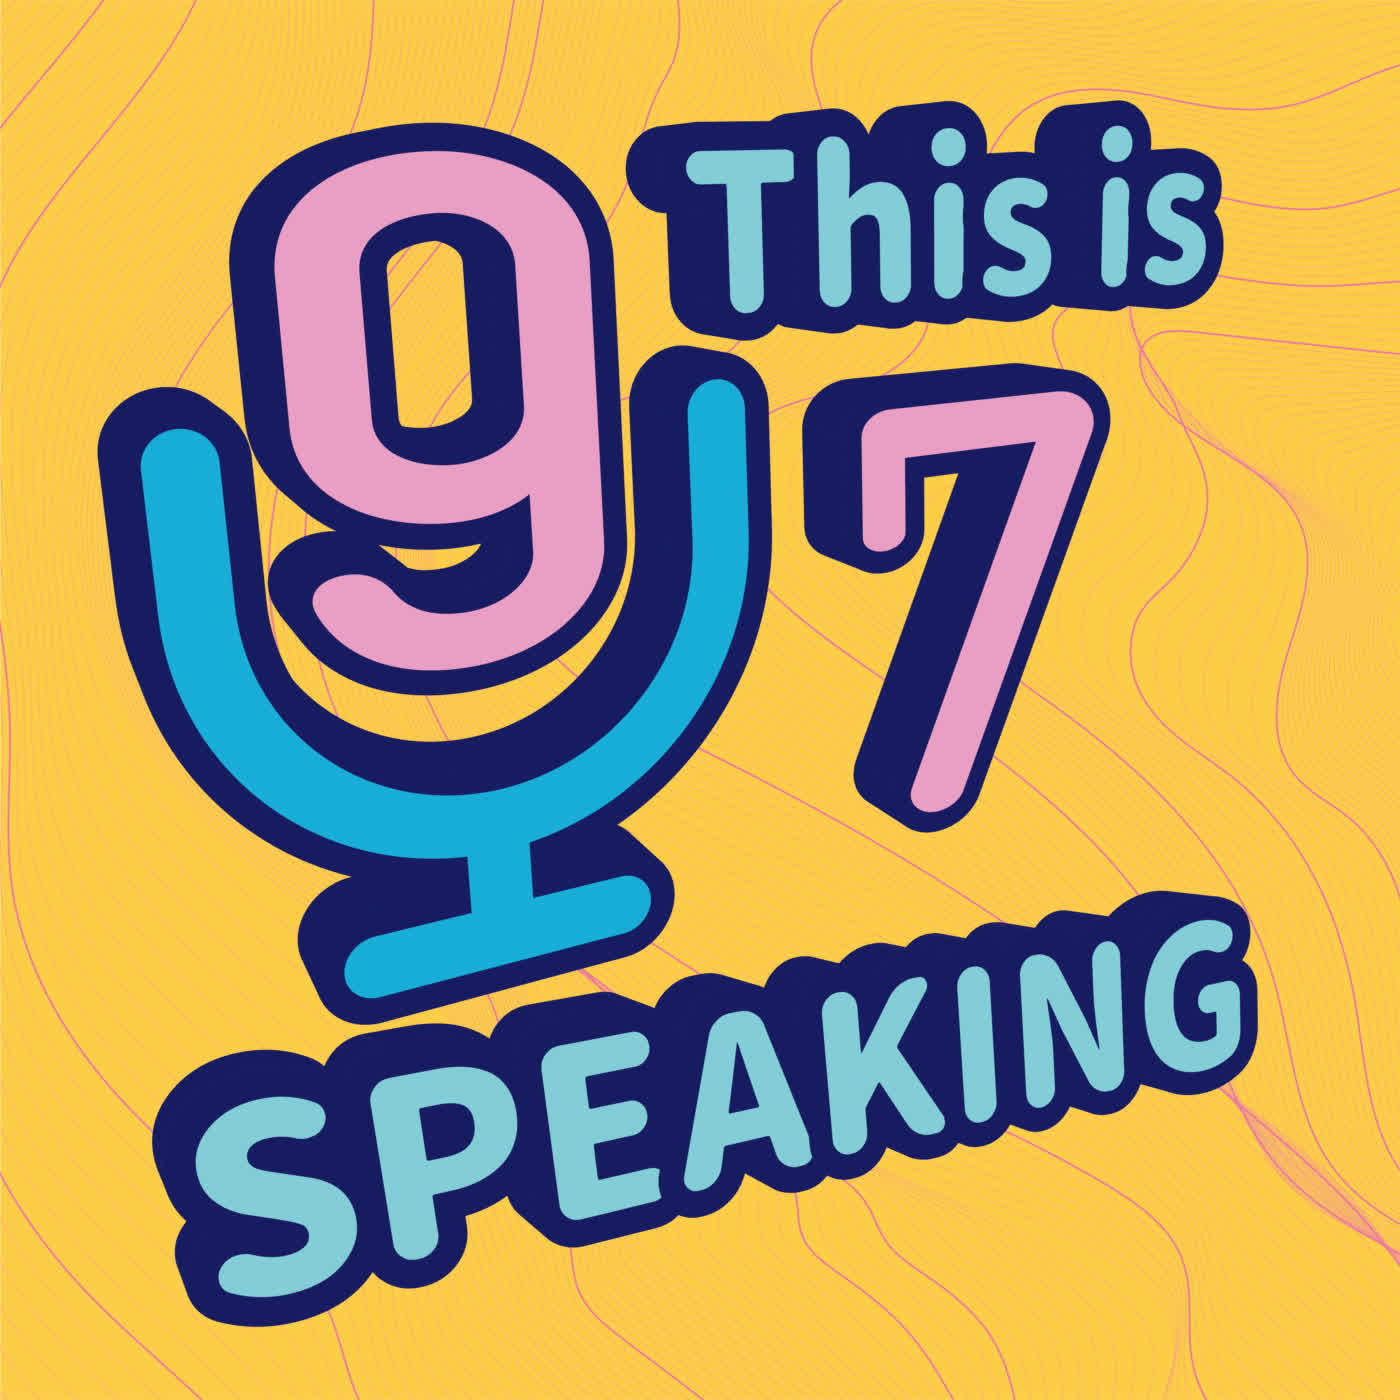 This is 97 Speaking